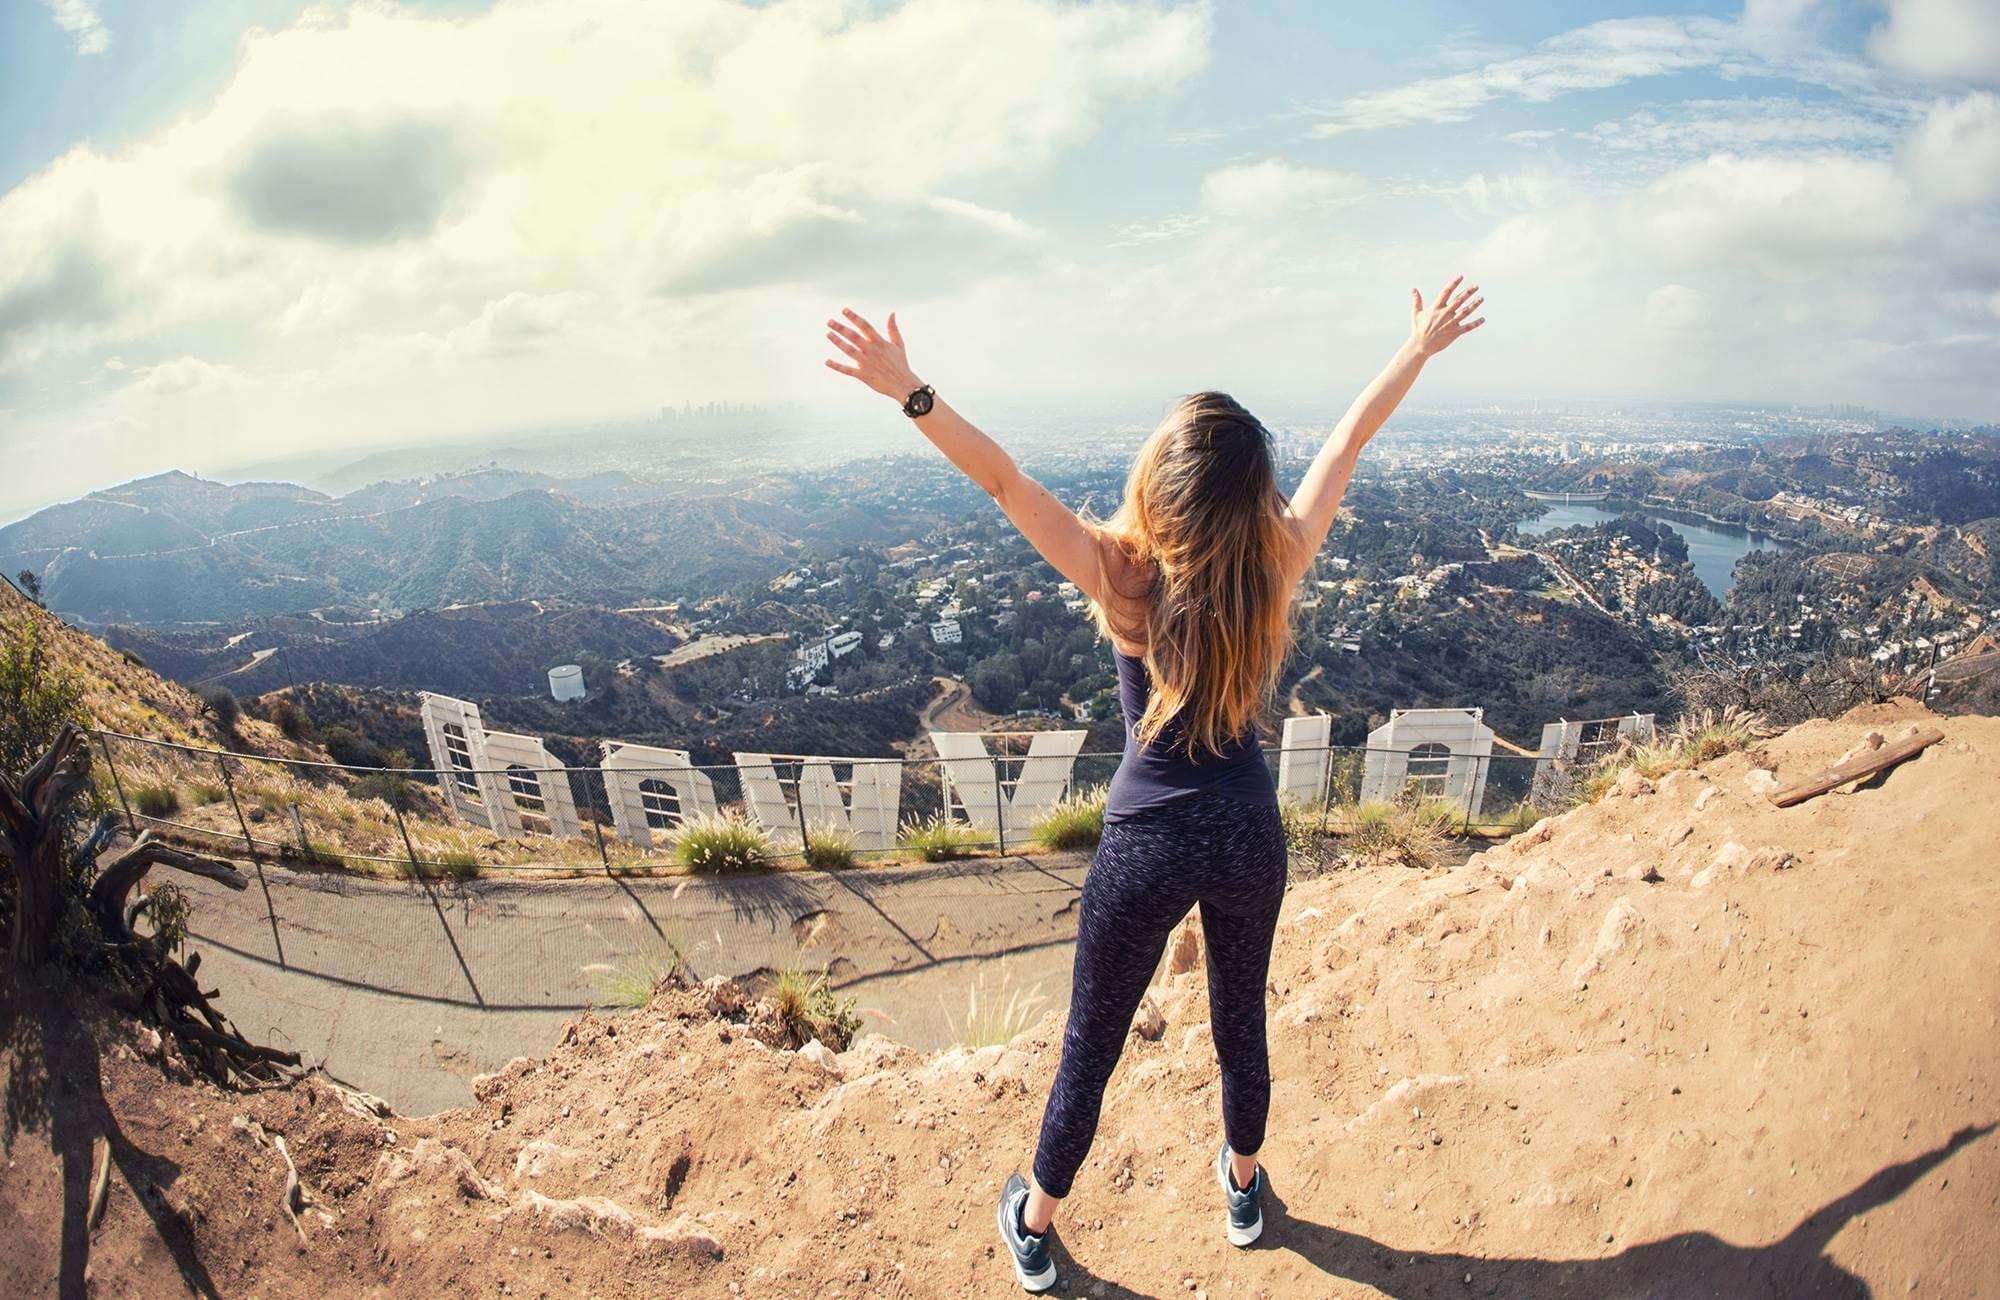 usa-california-los-angeles-woman-behind-hollywood-sign